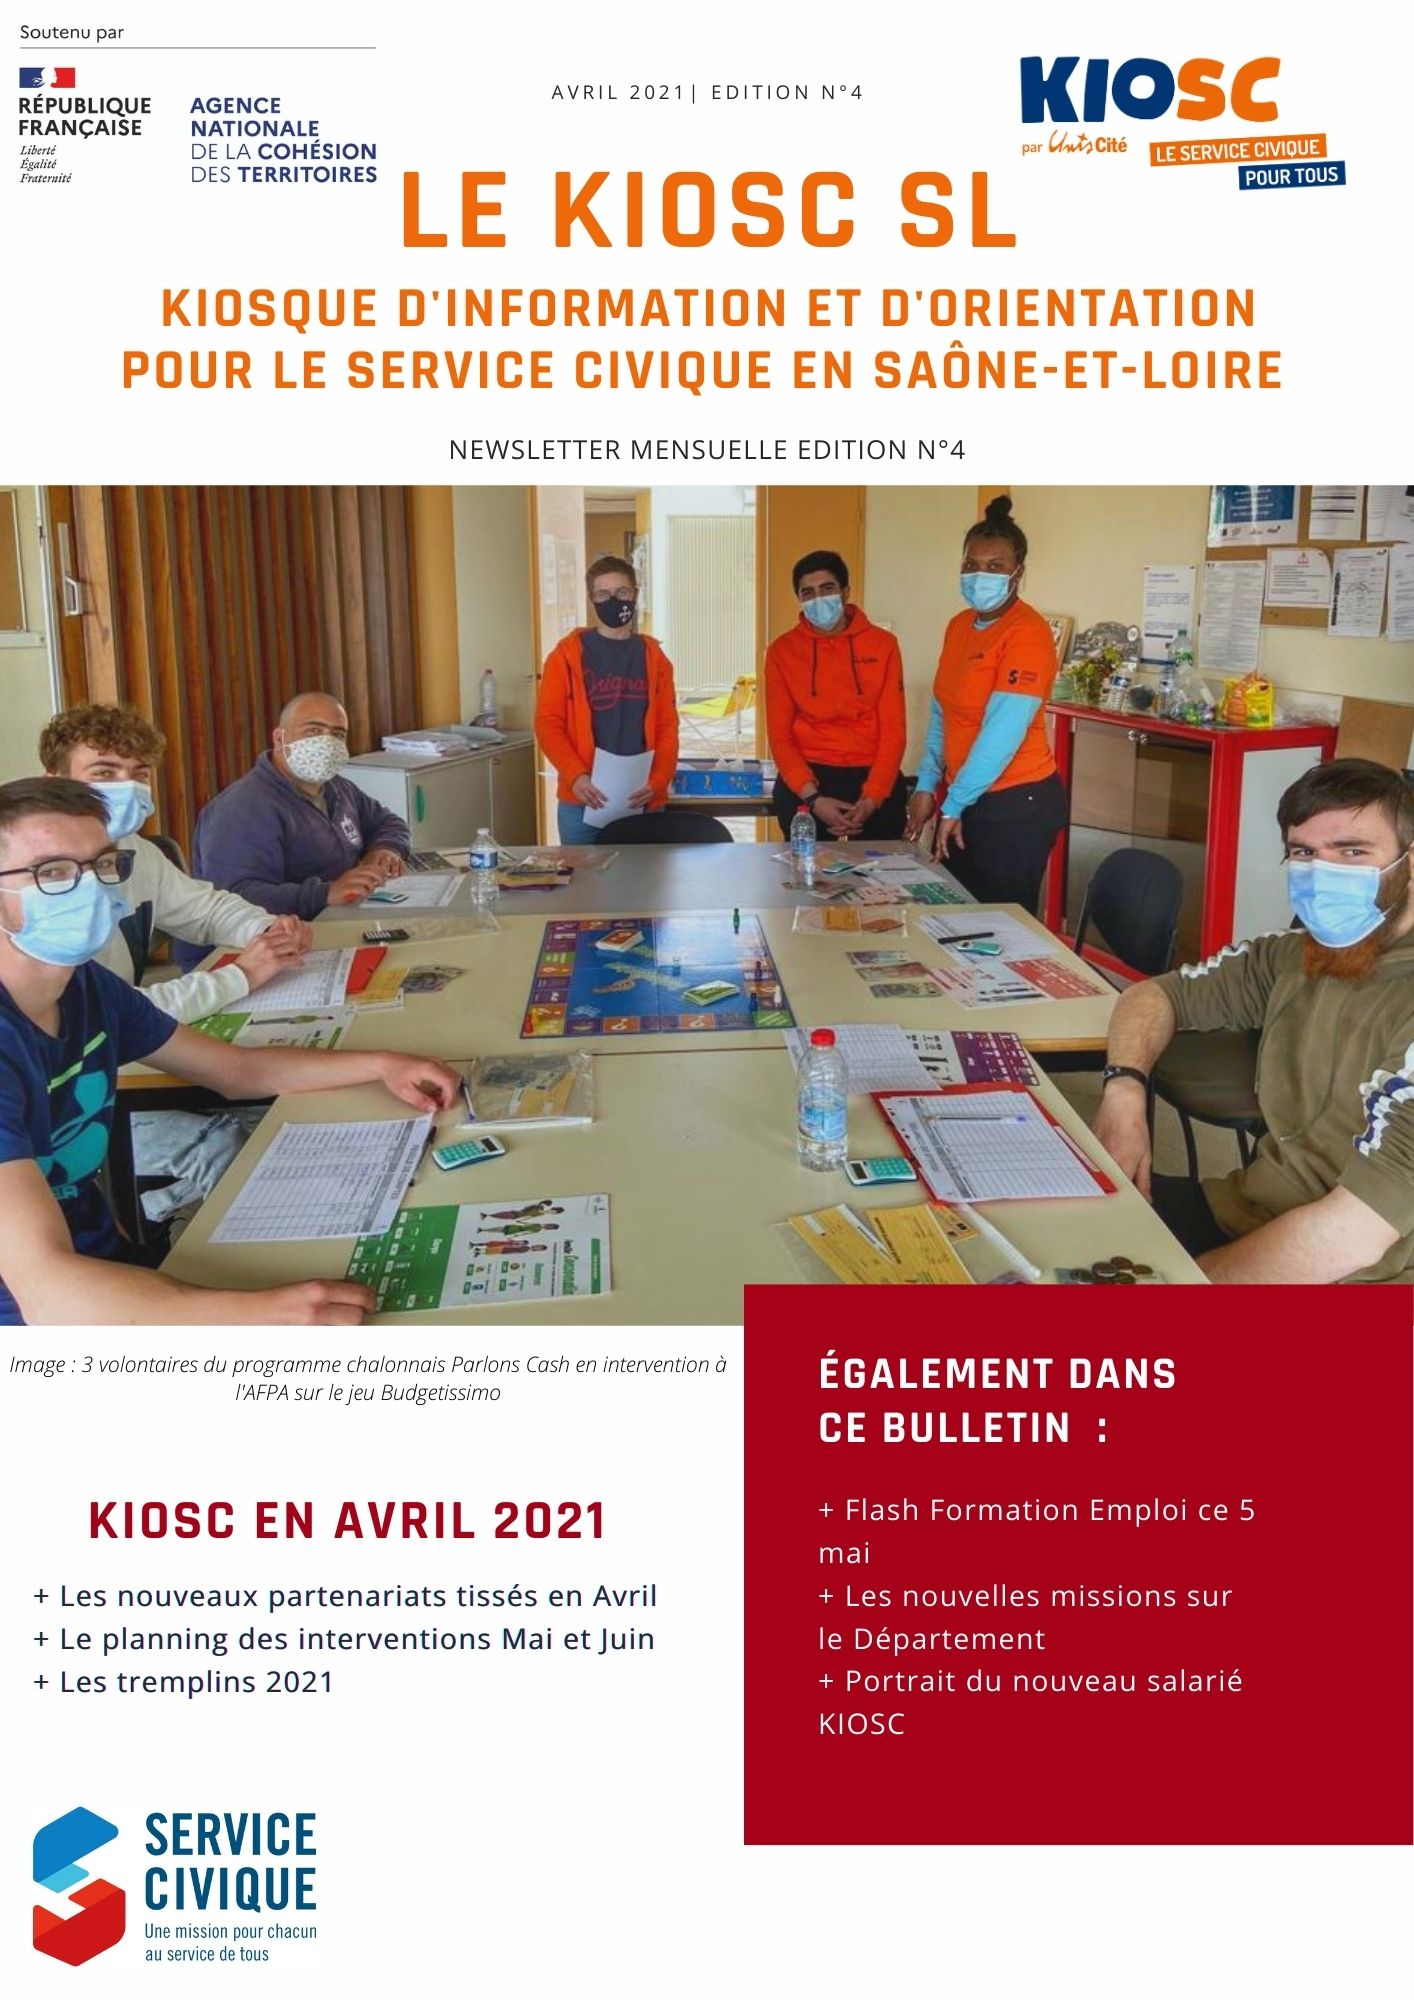 Newsletter KIOSC 71 d'Avril 2021